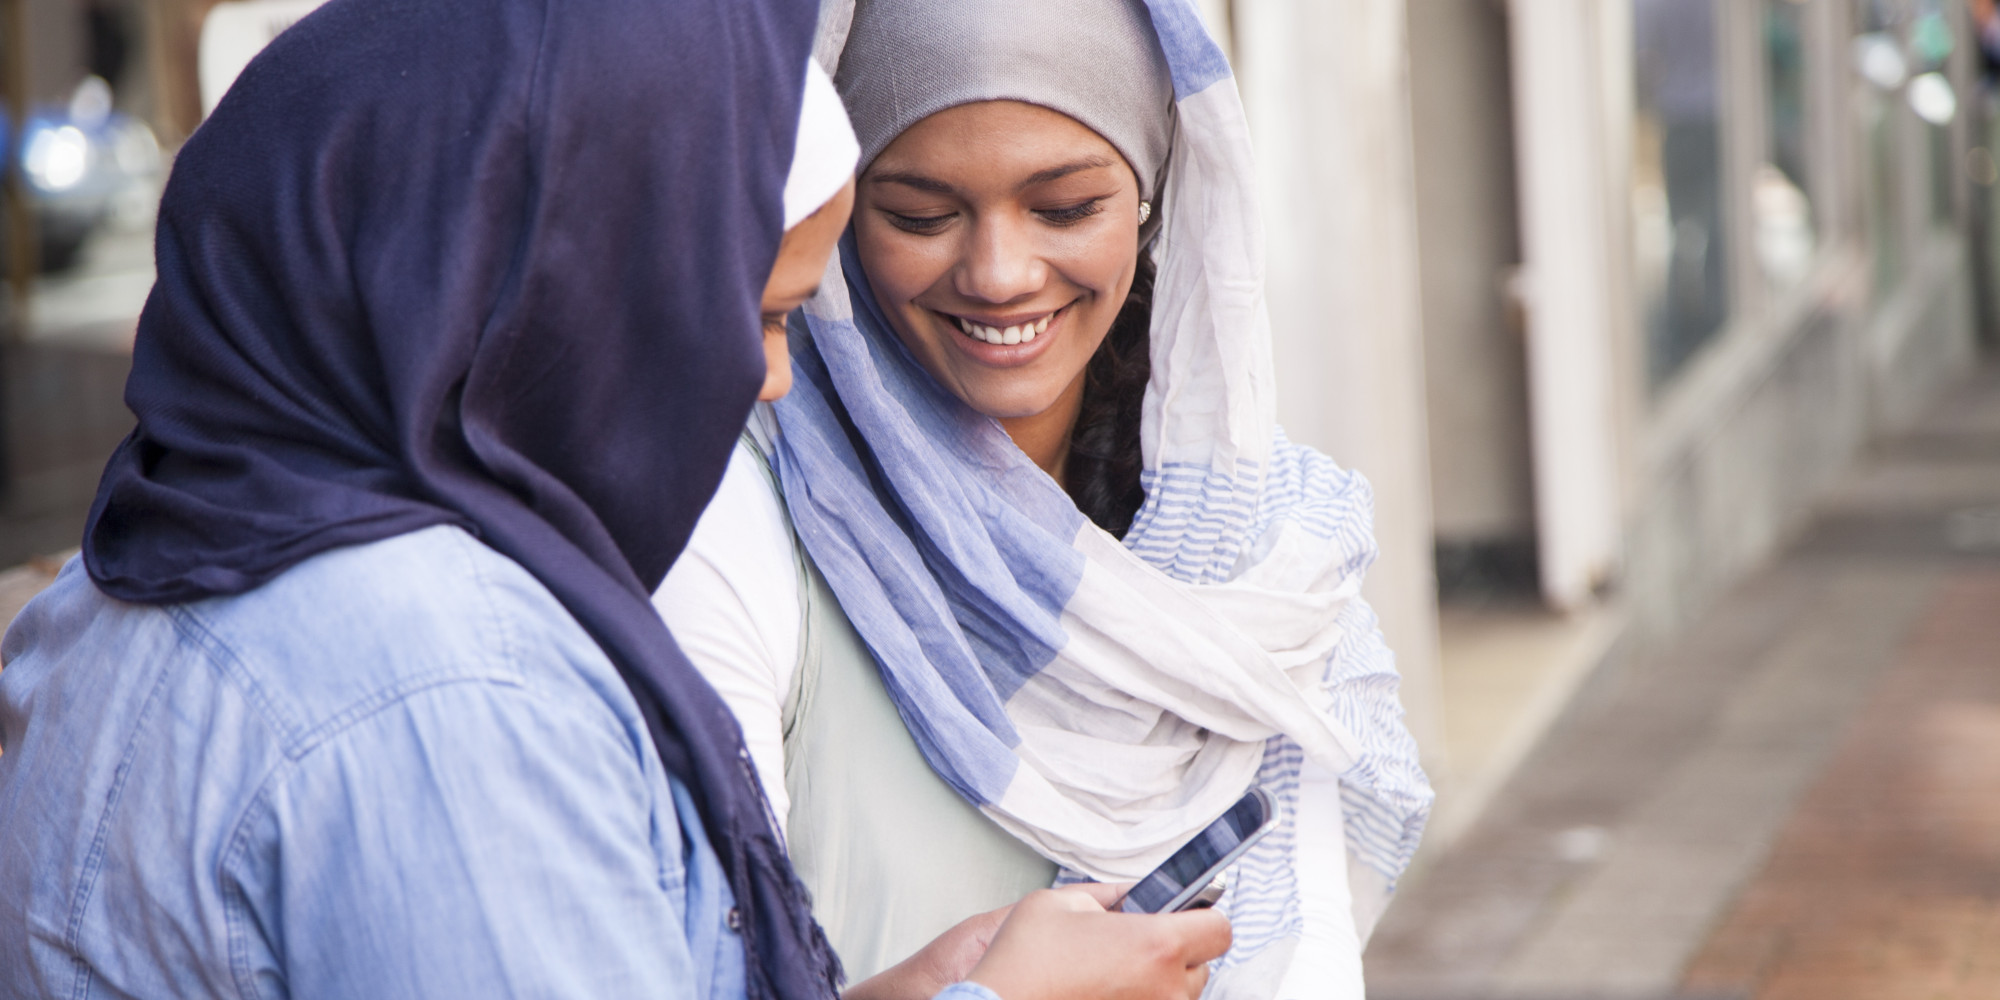 tinnie muslim women dating site How we can help single muslim men & women as muslim singles in the us know all too well, life only gets busier and more complicated with age between work, friends, family and faith, there's little time left for finding love.